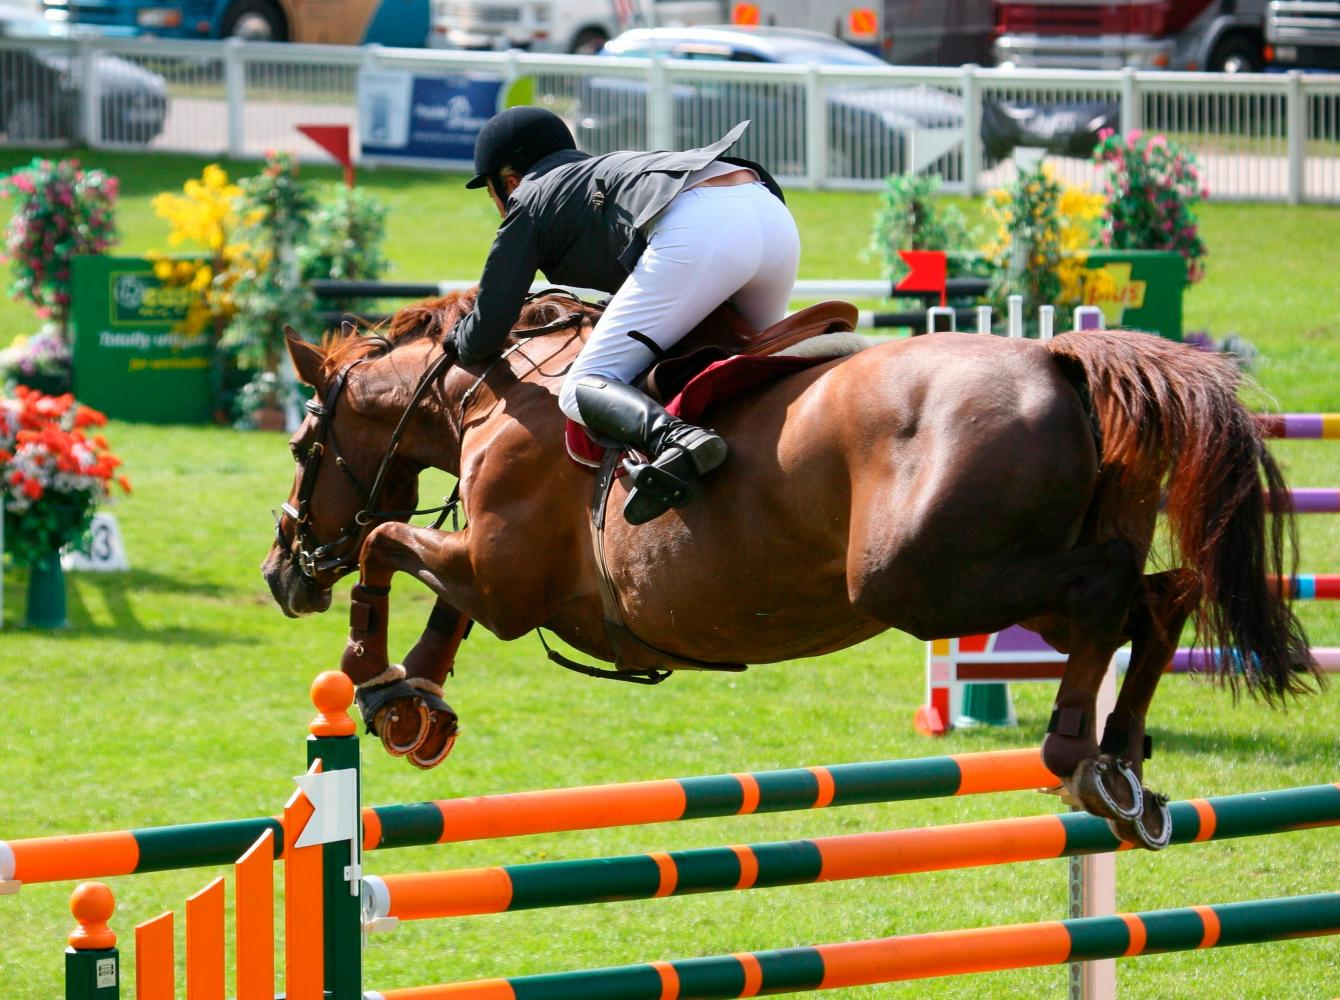 A show jumper in a contest